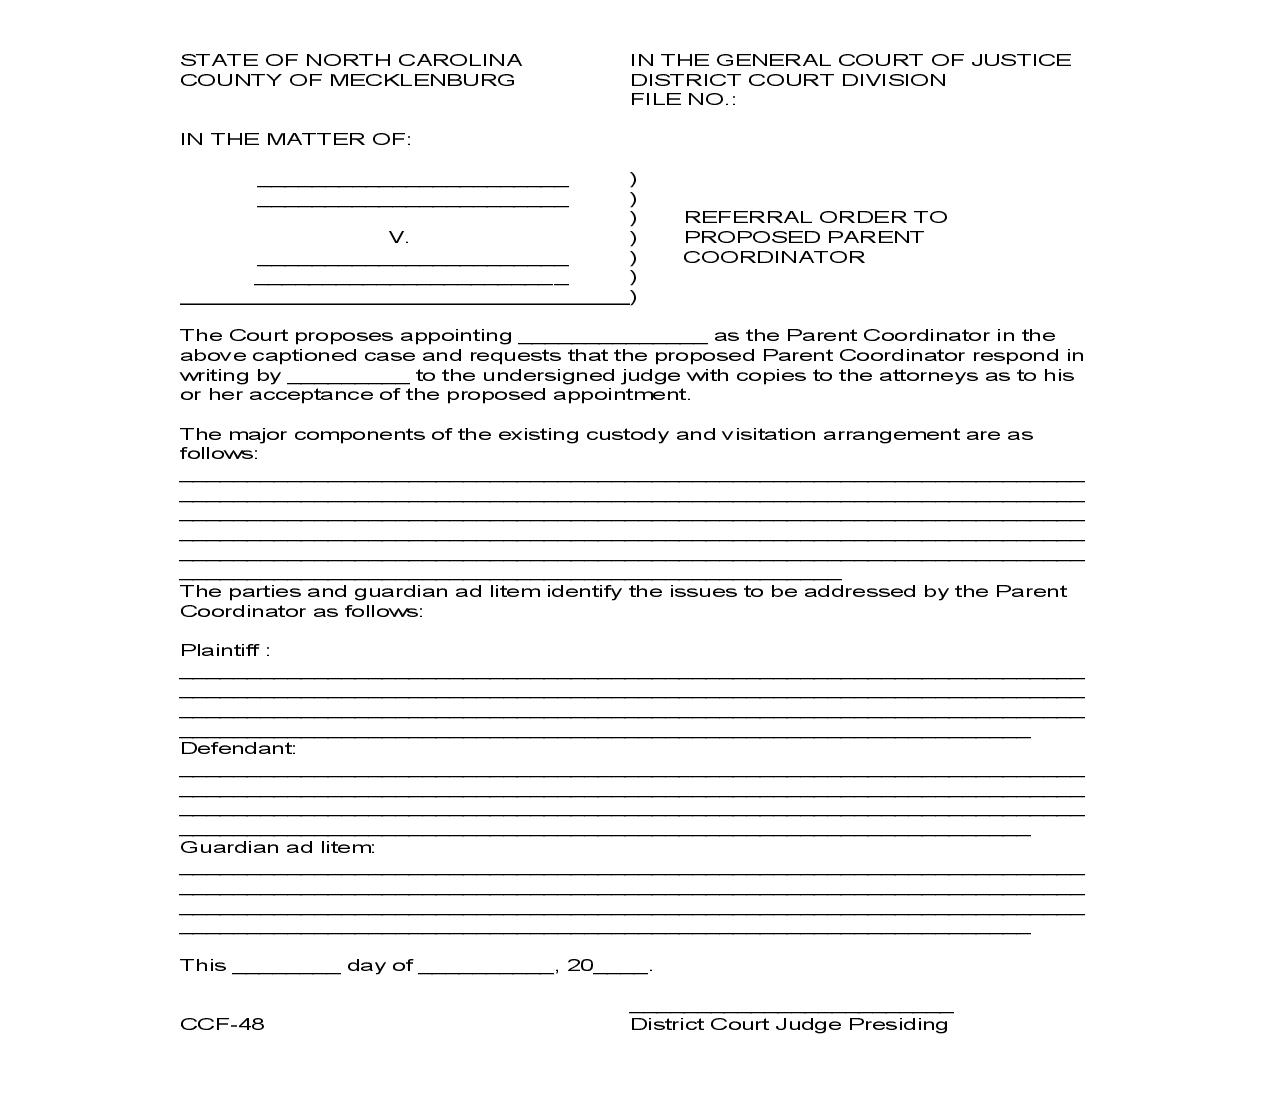 Referral Order To Proposed Parent Coordinator {CCF-48} | Pdf Fpdf Doc Docx | North Carolina